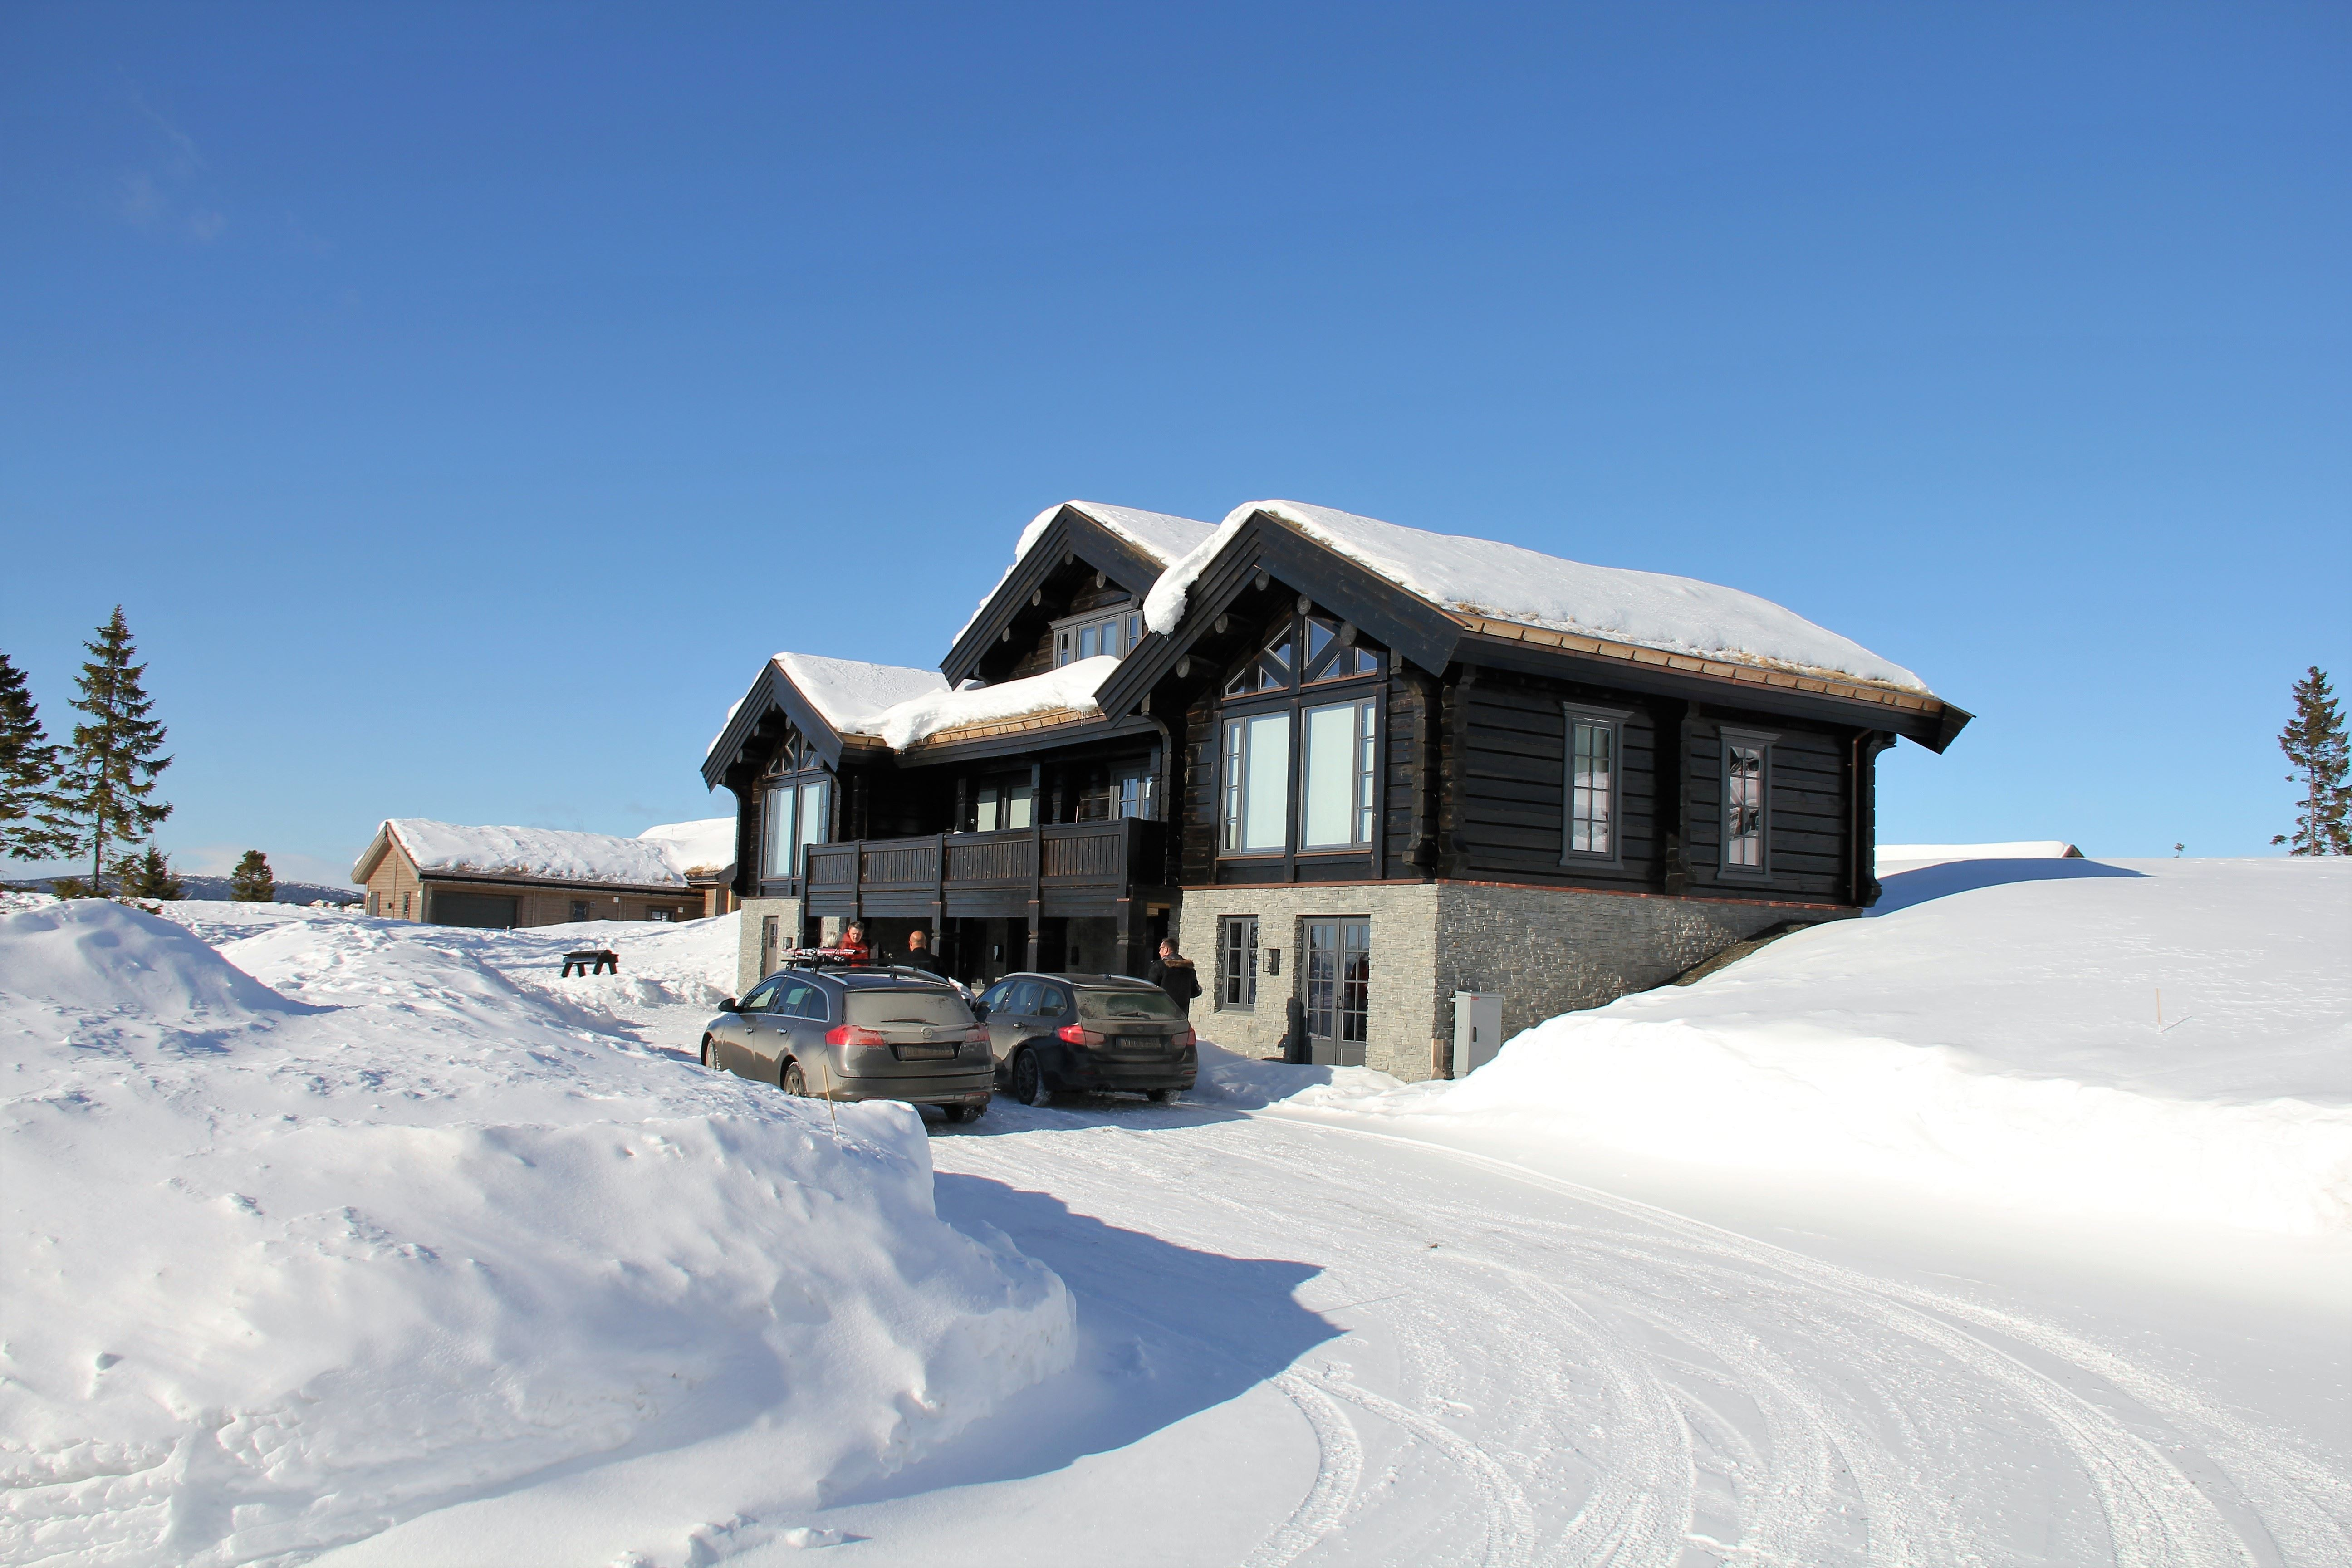 Mosetertoppen luxury chalet